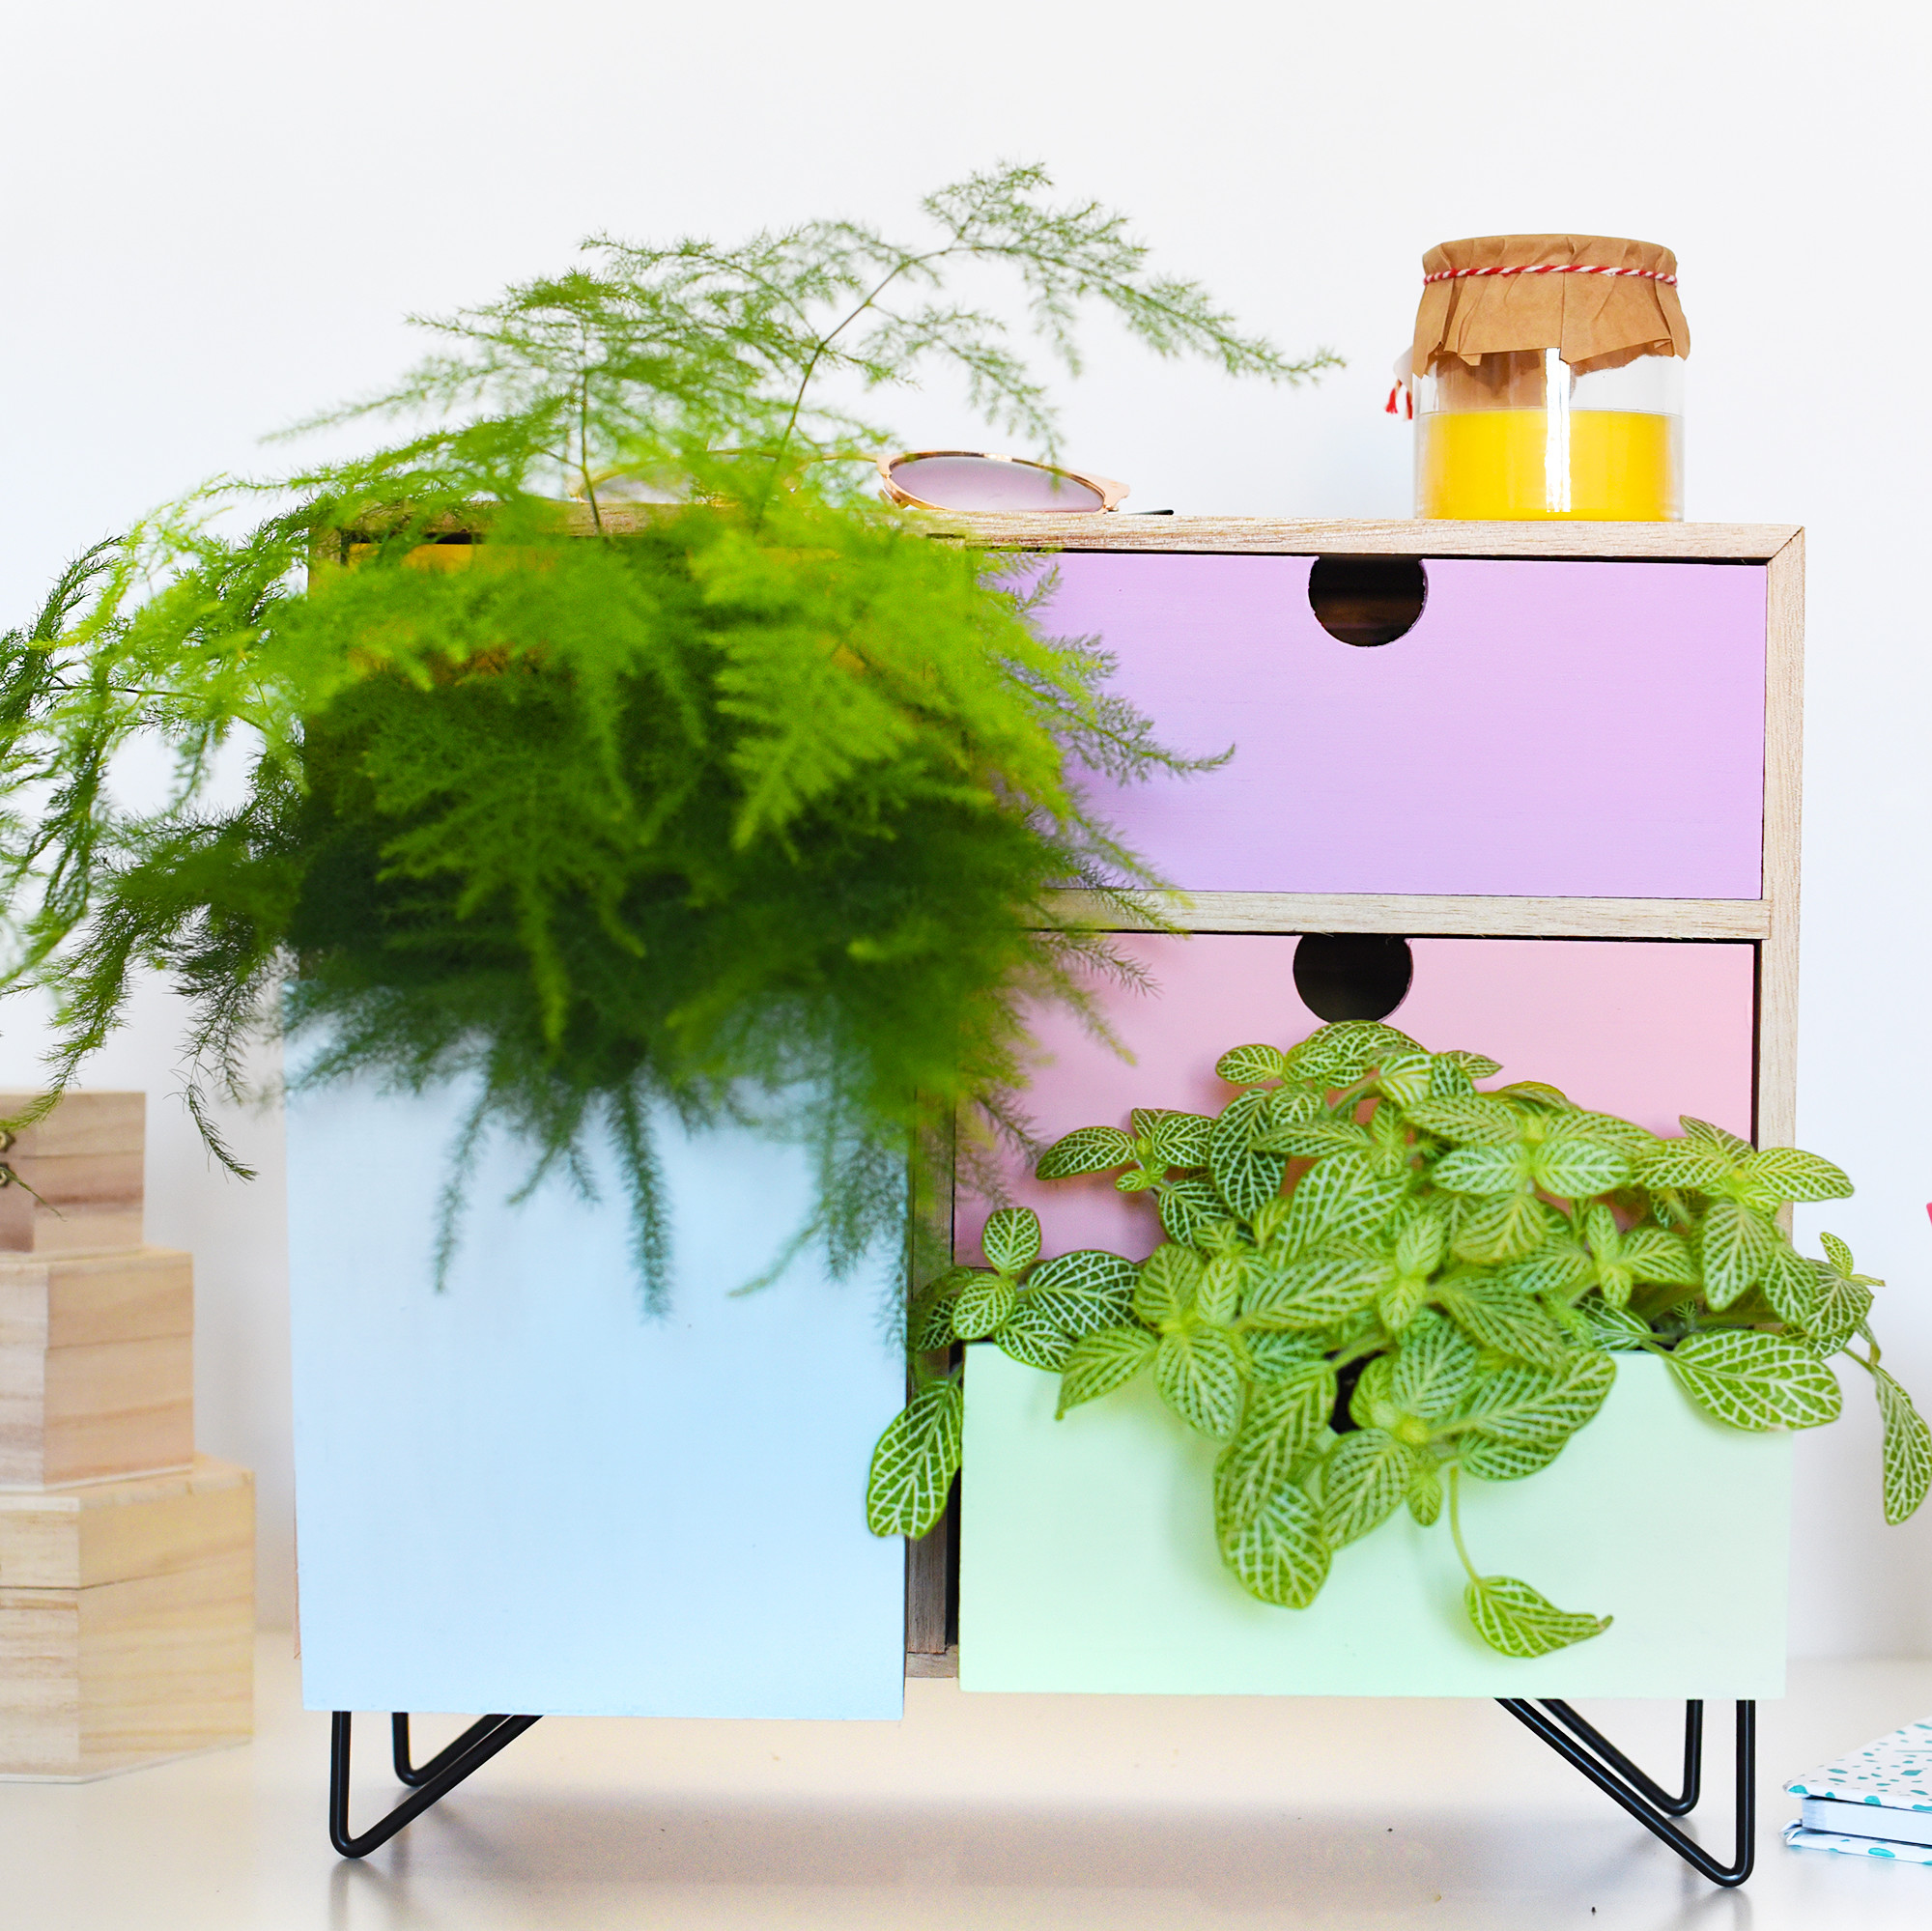 chest of colorful drawers filled with plants